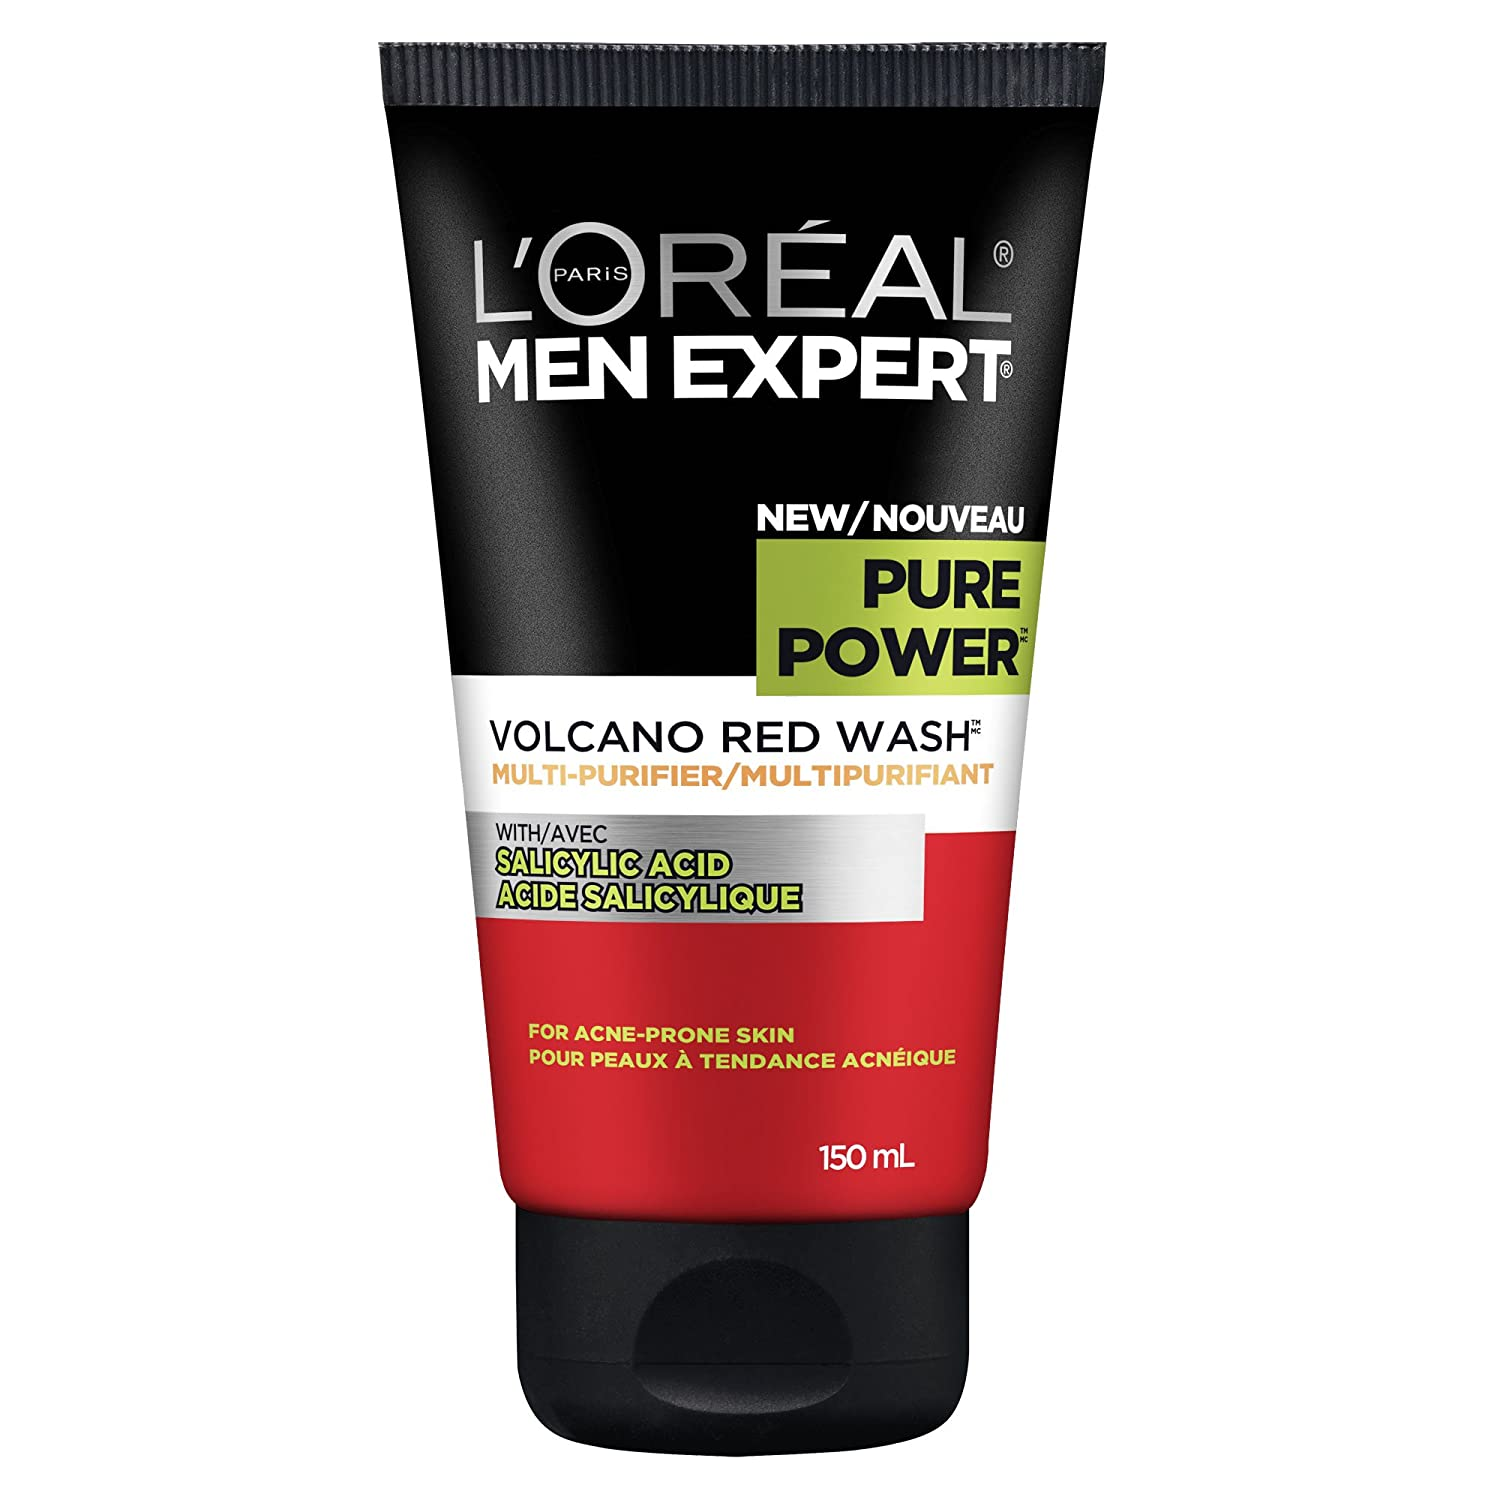 L'Oreal Paris Men Expert Pure Power, Multi-Purifying Volcano Red Wash Cleanser, Foaming Face Wash With Salicylic Acid, For Acne Prone Skin, 150 ML L' Oreal Paris